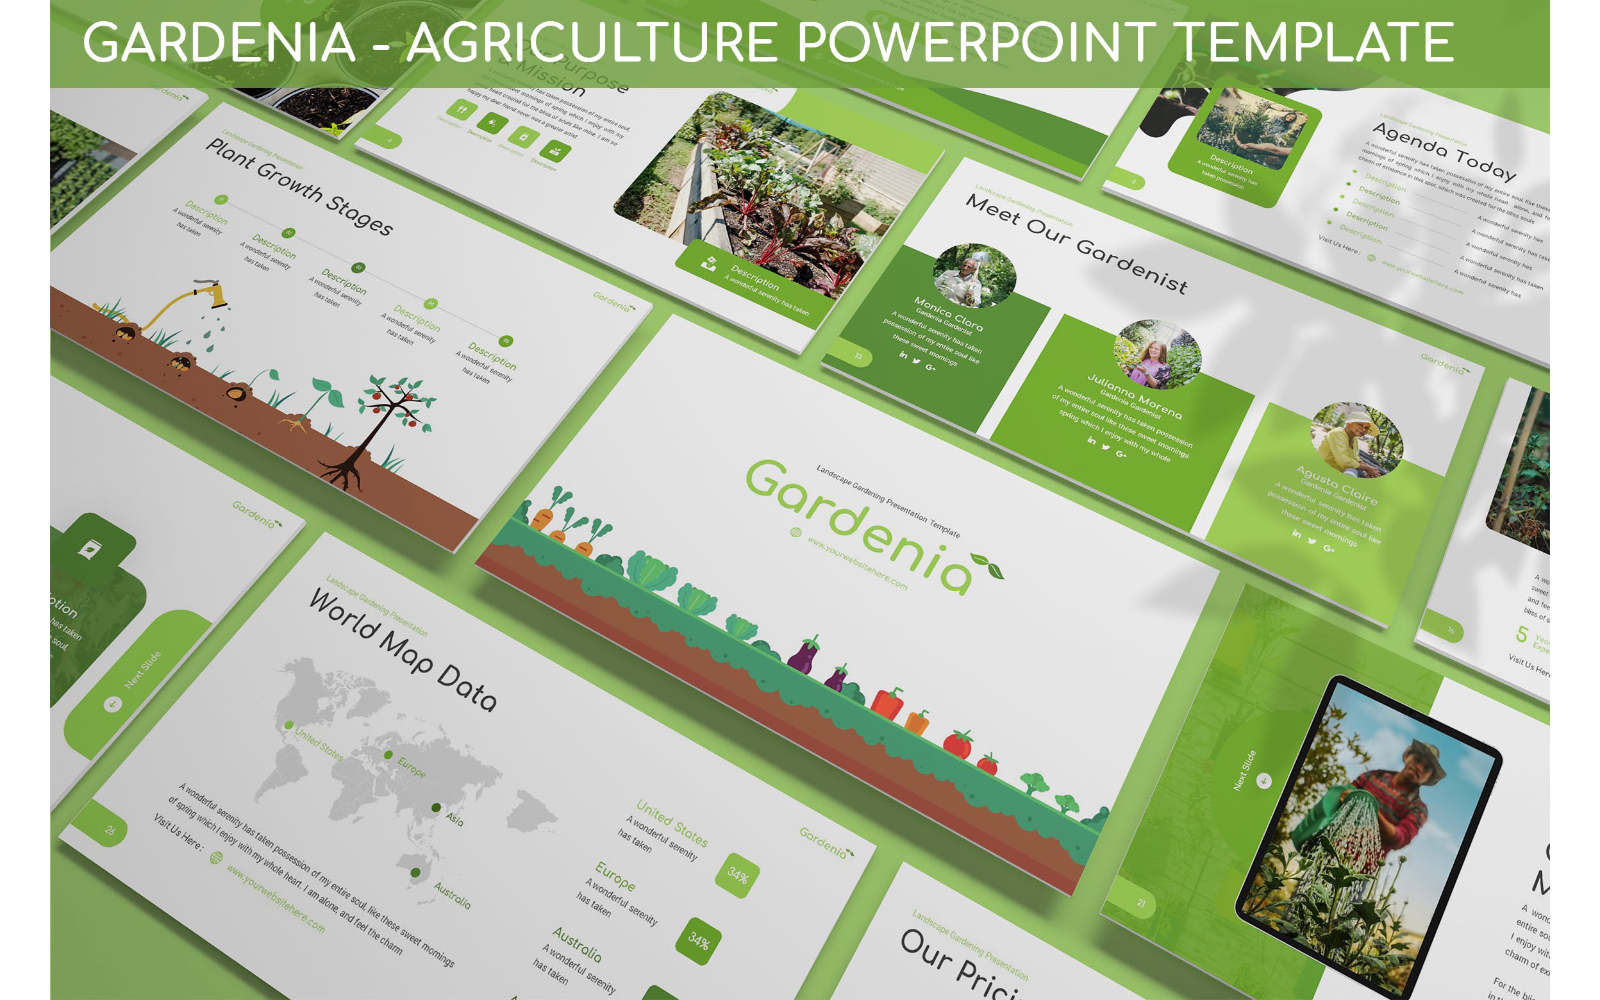 Gardenia - Agriculture Powerpoint Template